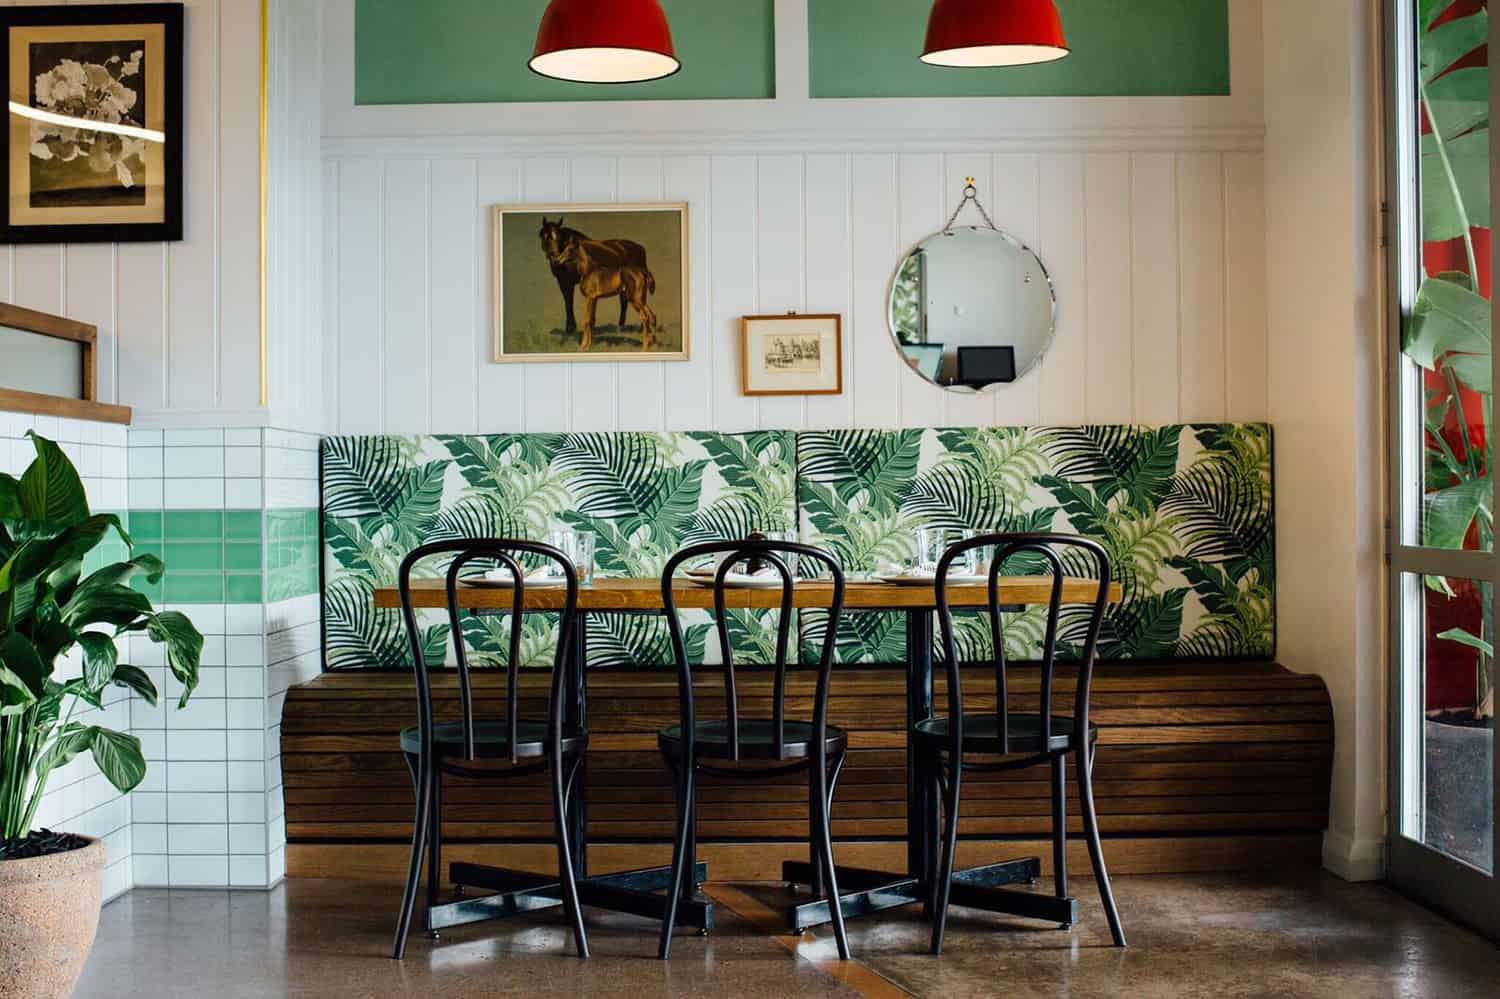 Culpepper restaurant in Auckland table and chair design including bench seating and leafy back wall